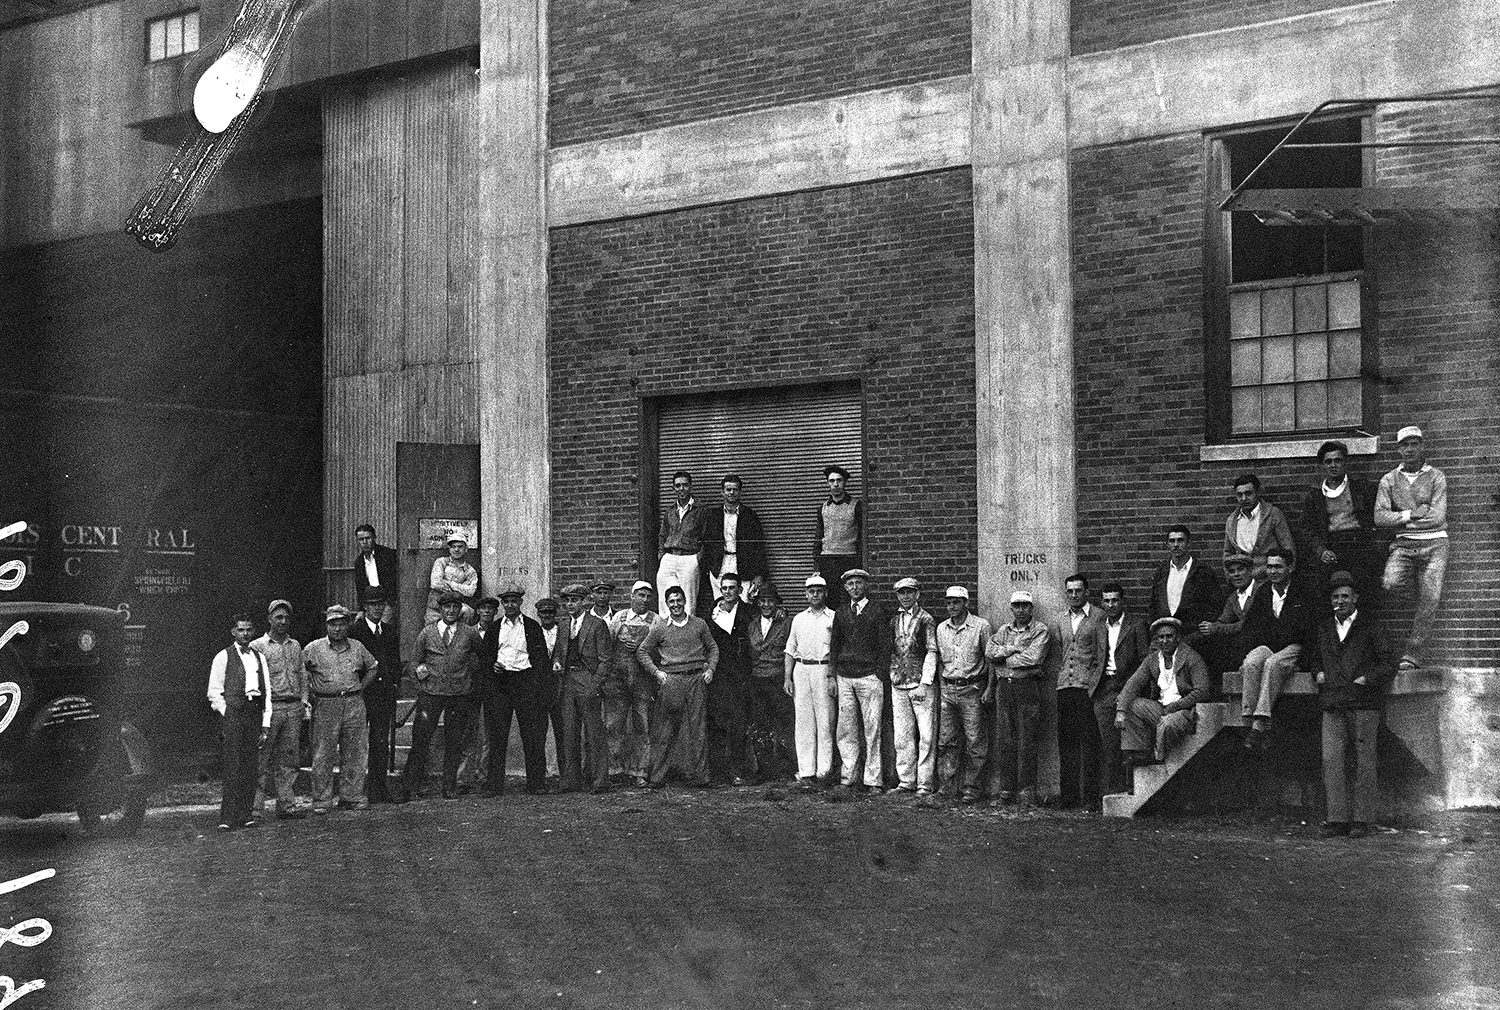 Pillsbury employees gather outside the plant around 1932. File/The State Journal-Register